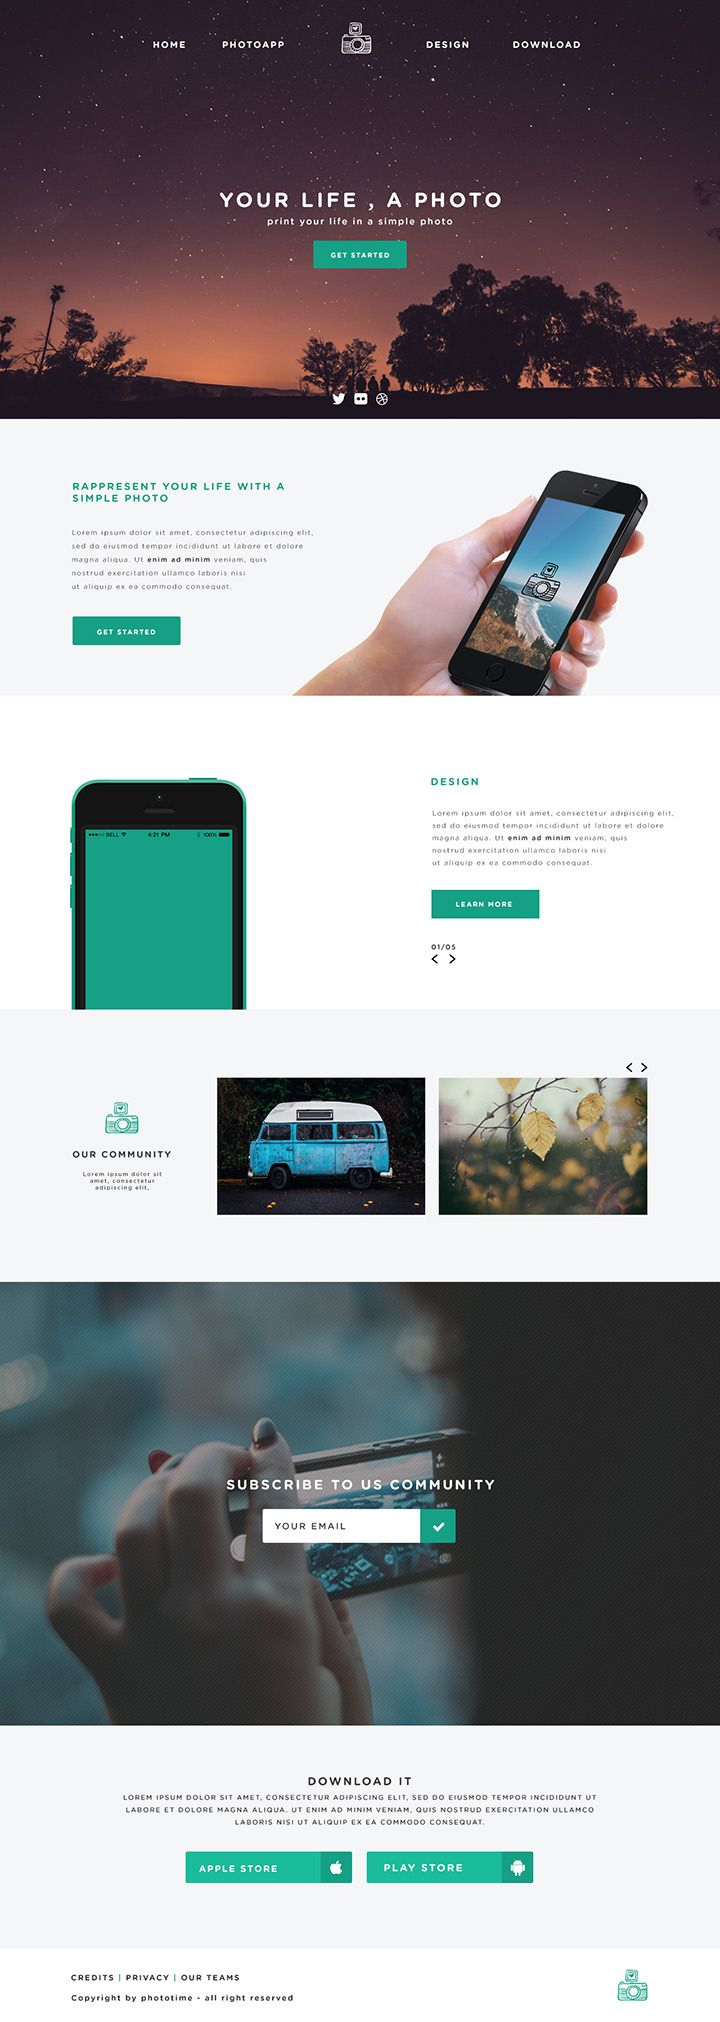 best ideas about website templates salon posted under bies tagged landing page layout psd resource single page template web design by fribly editorial